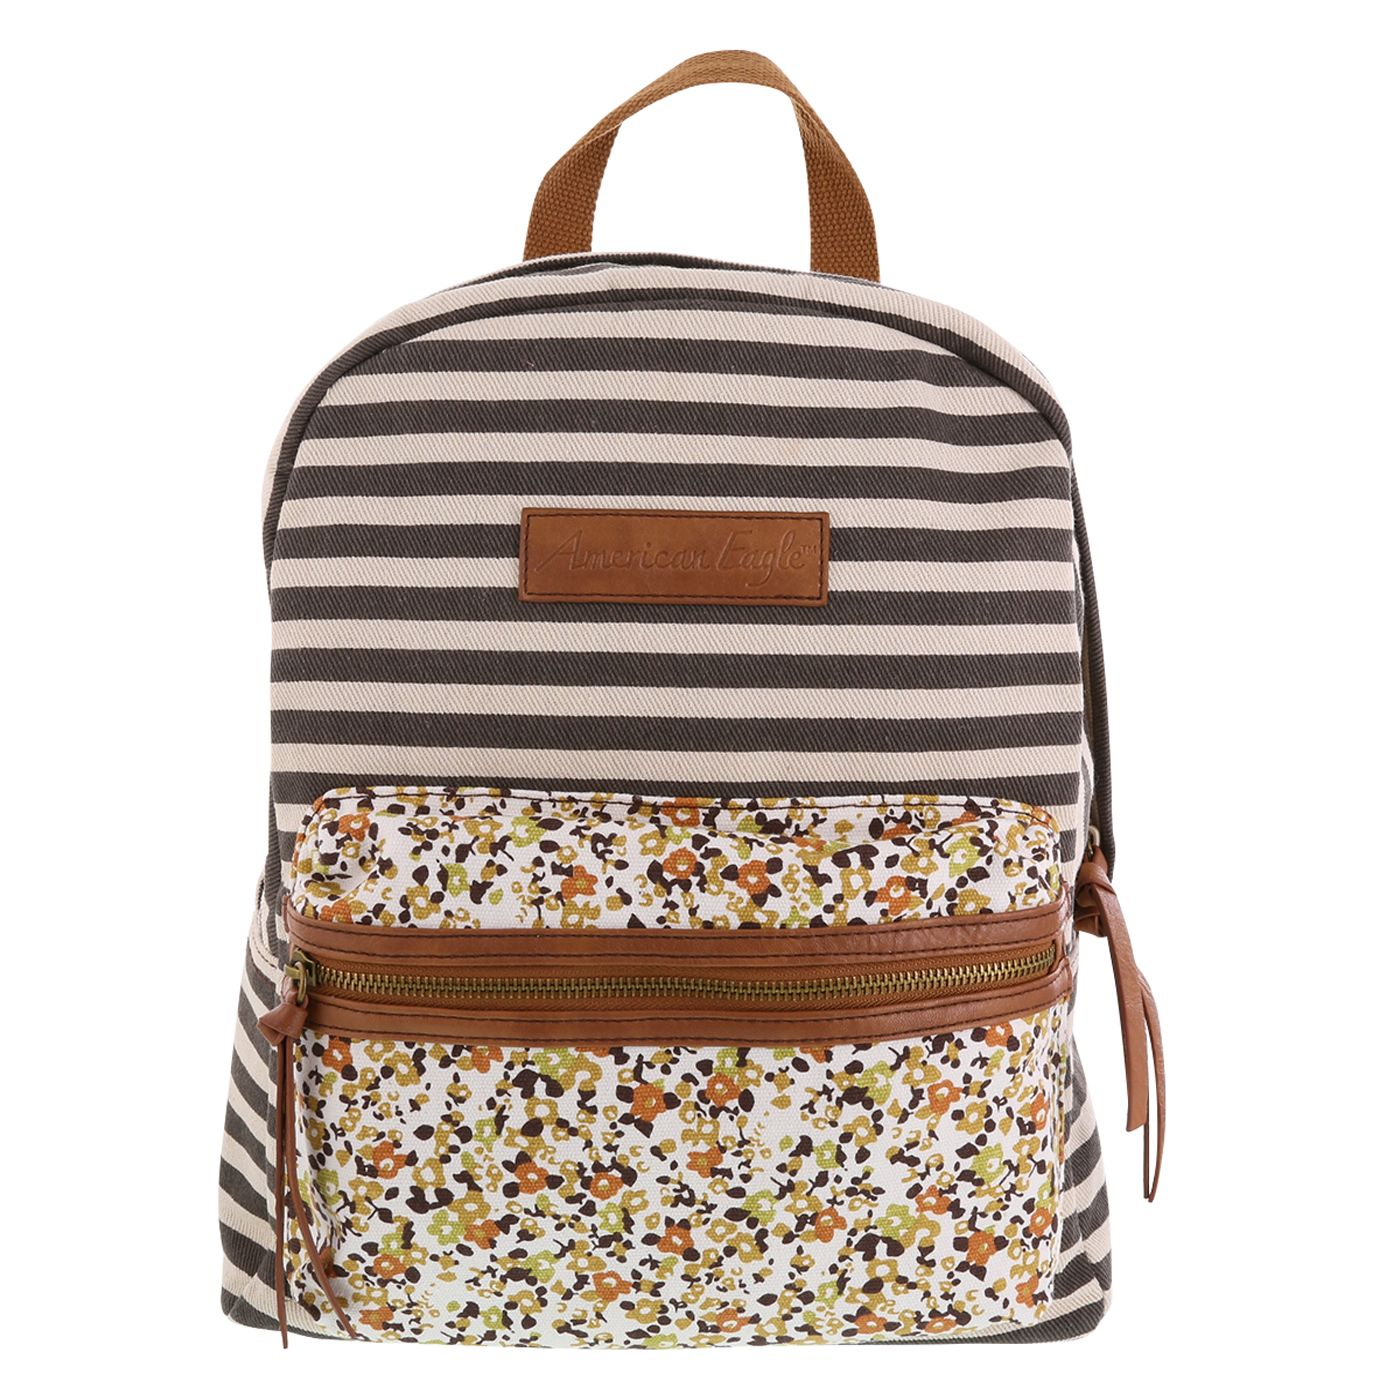 Roller shoes payless - Womens Johnna Backpack American Eagle Payless Shoes